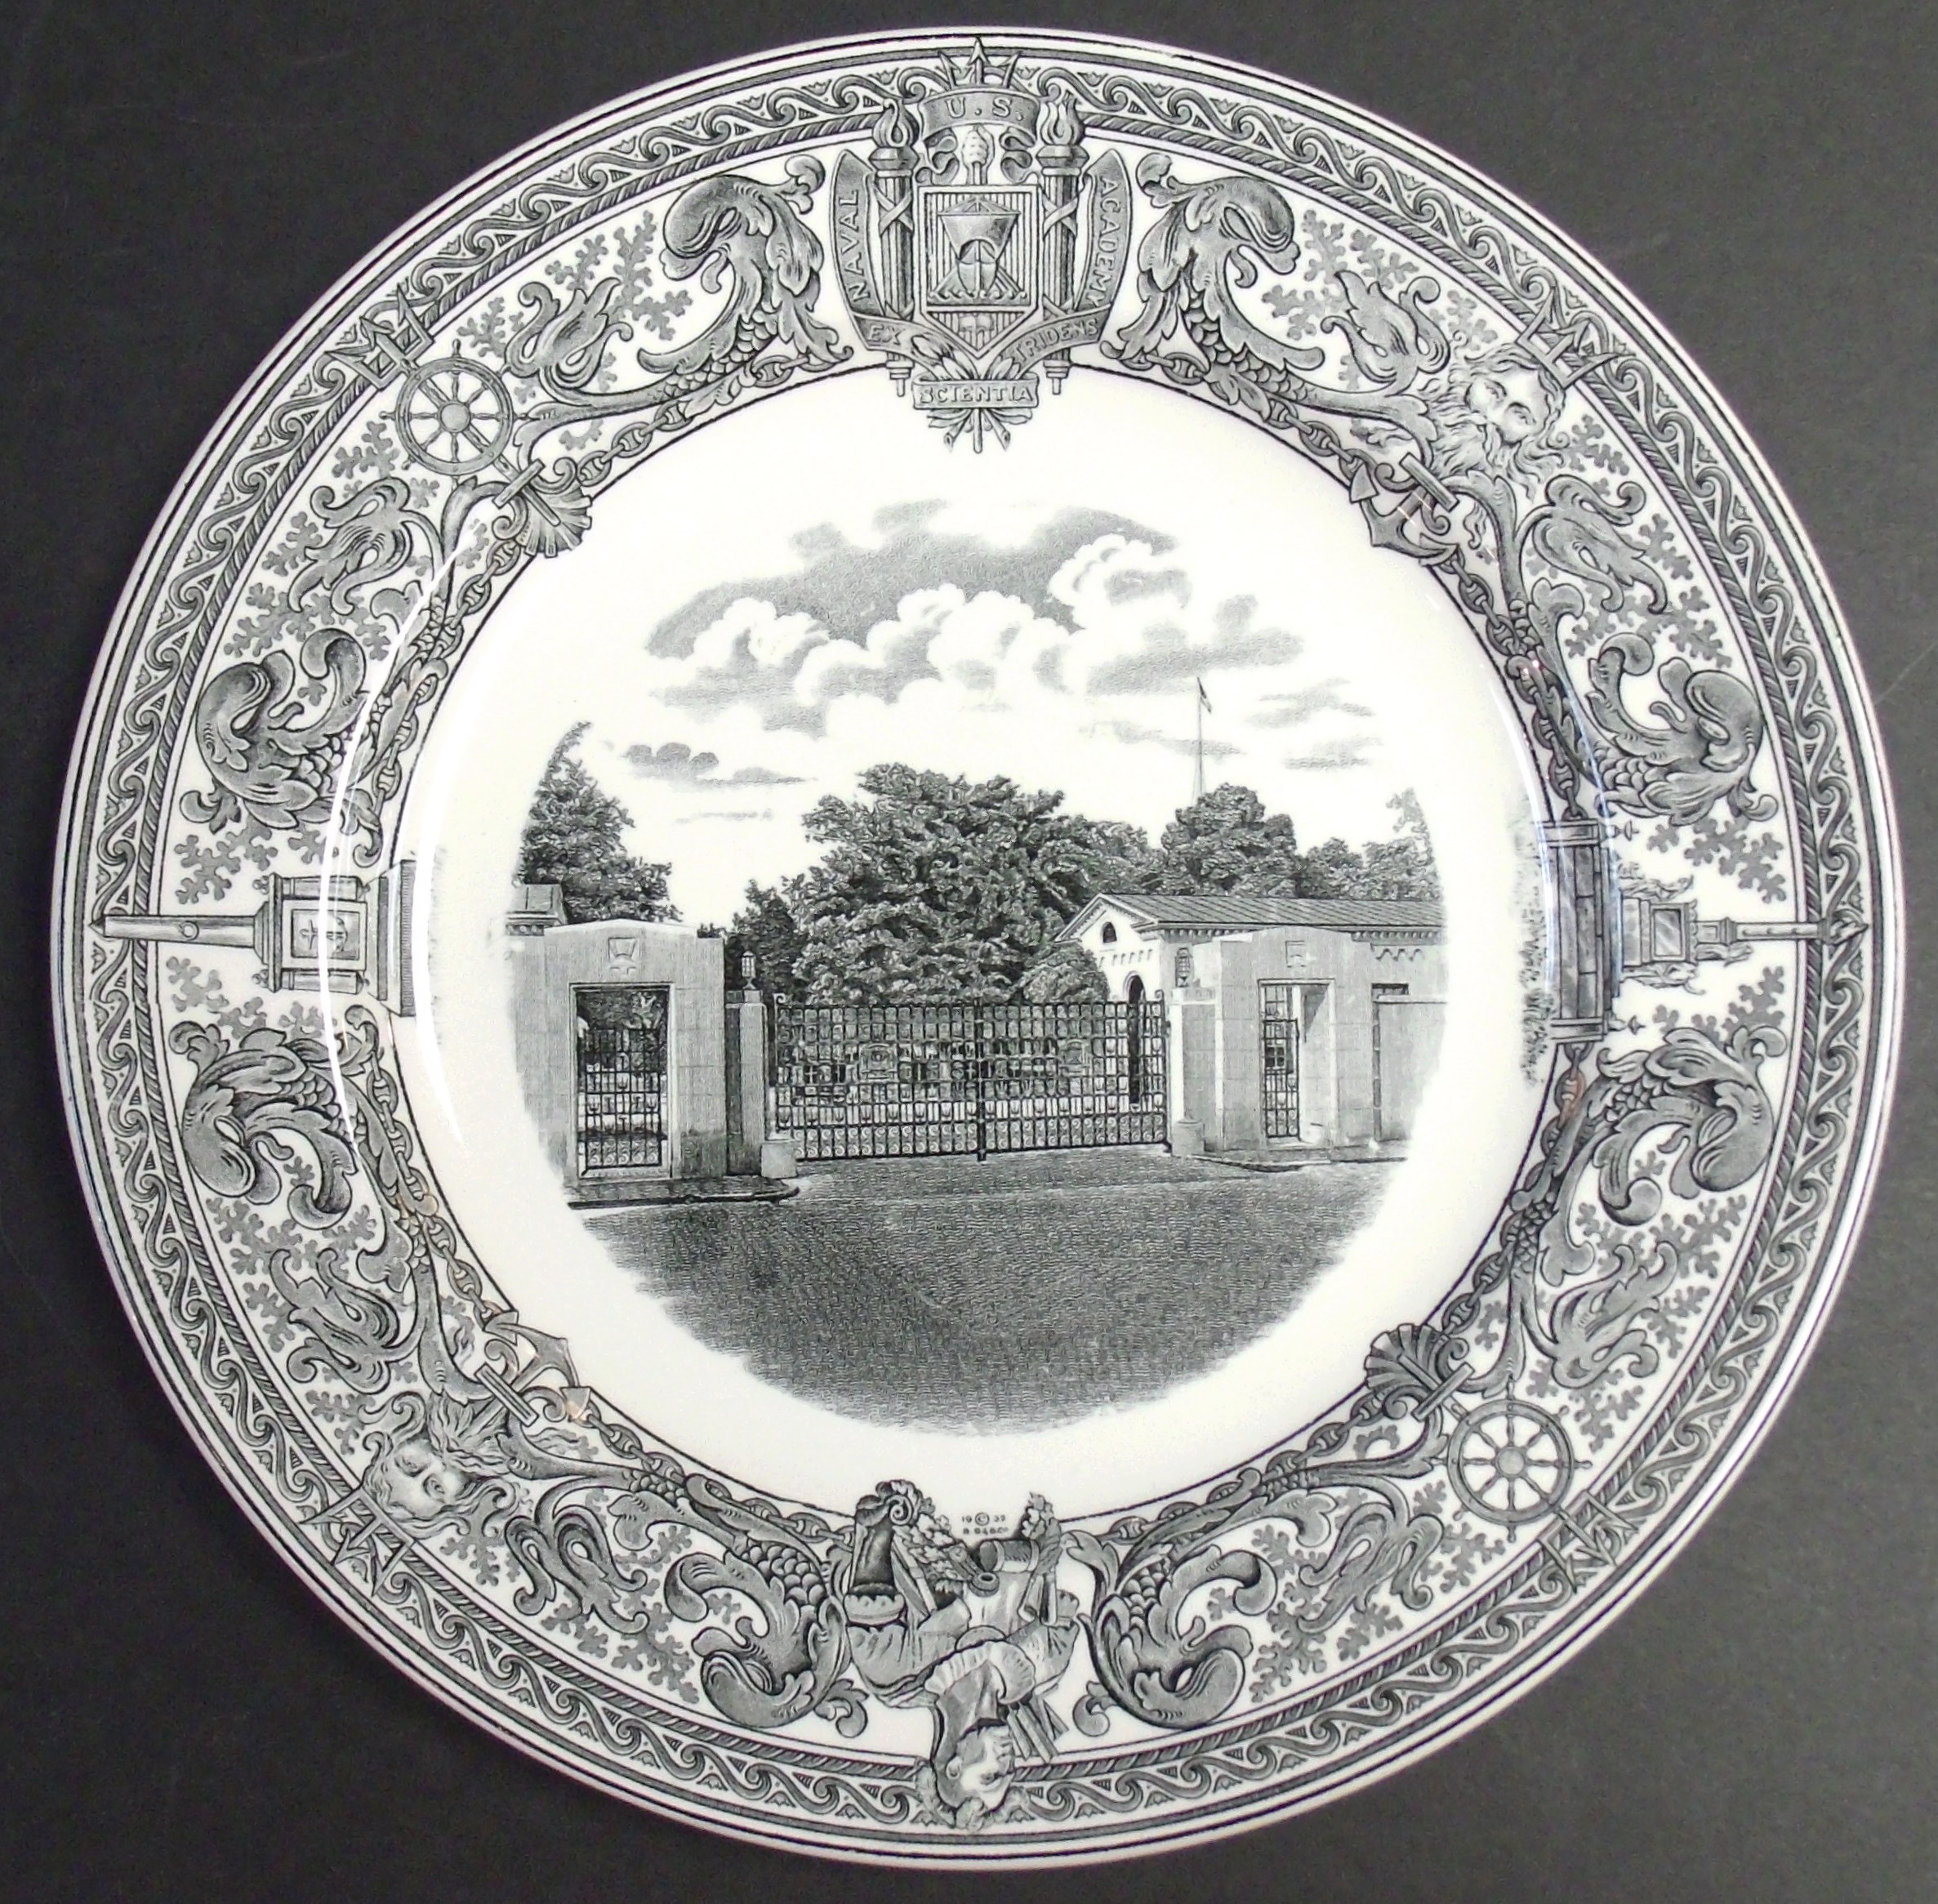 SET OF 6 SPODE 1932 United States US NAVAL ACADEMY Black \u0026 White DINNER PLATES & SET OF 6 SPODE 1932 United States US NAVAL ACADEMY Black \u0026 White ...